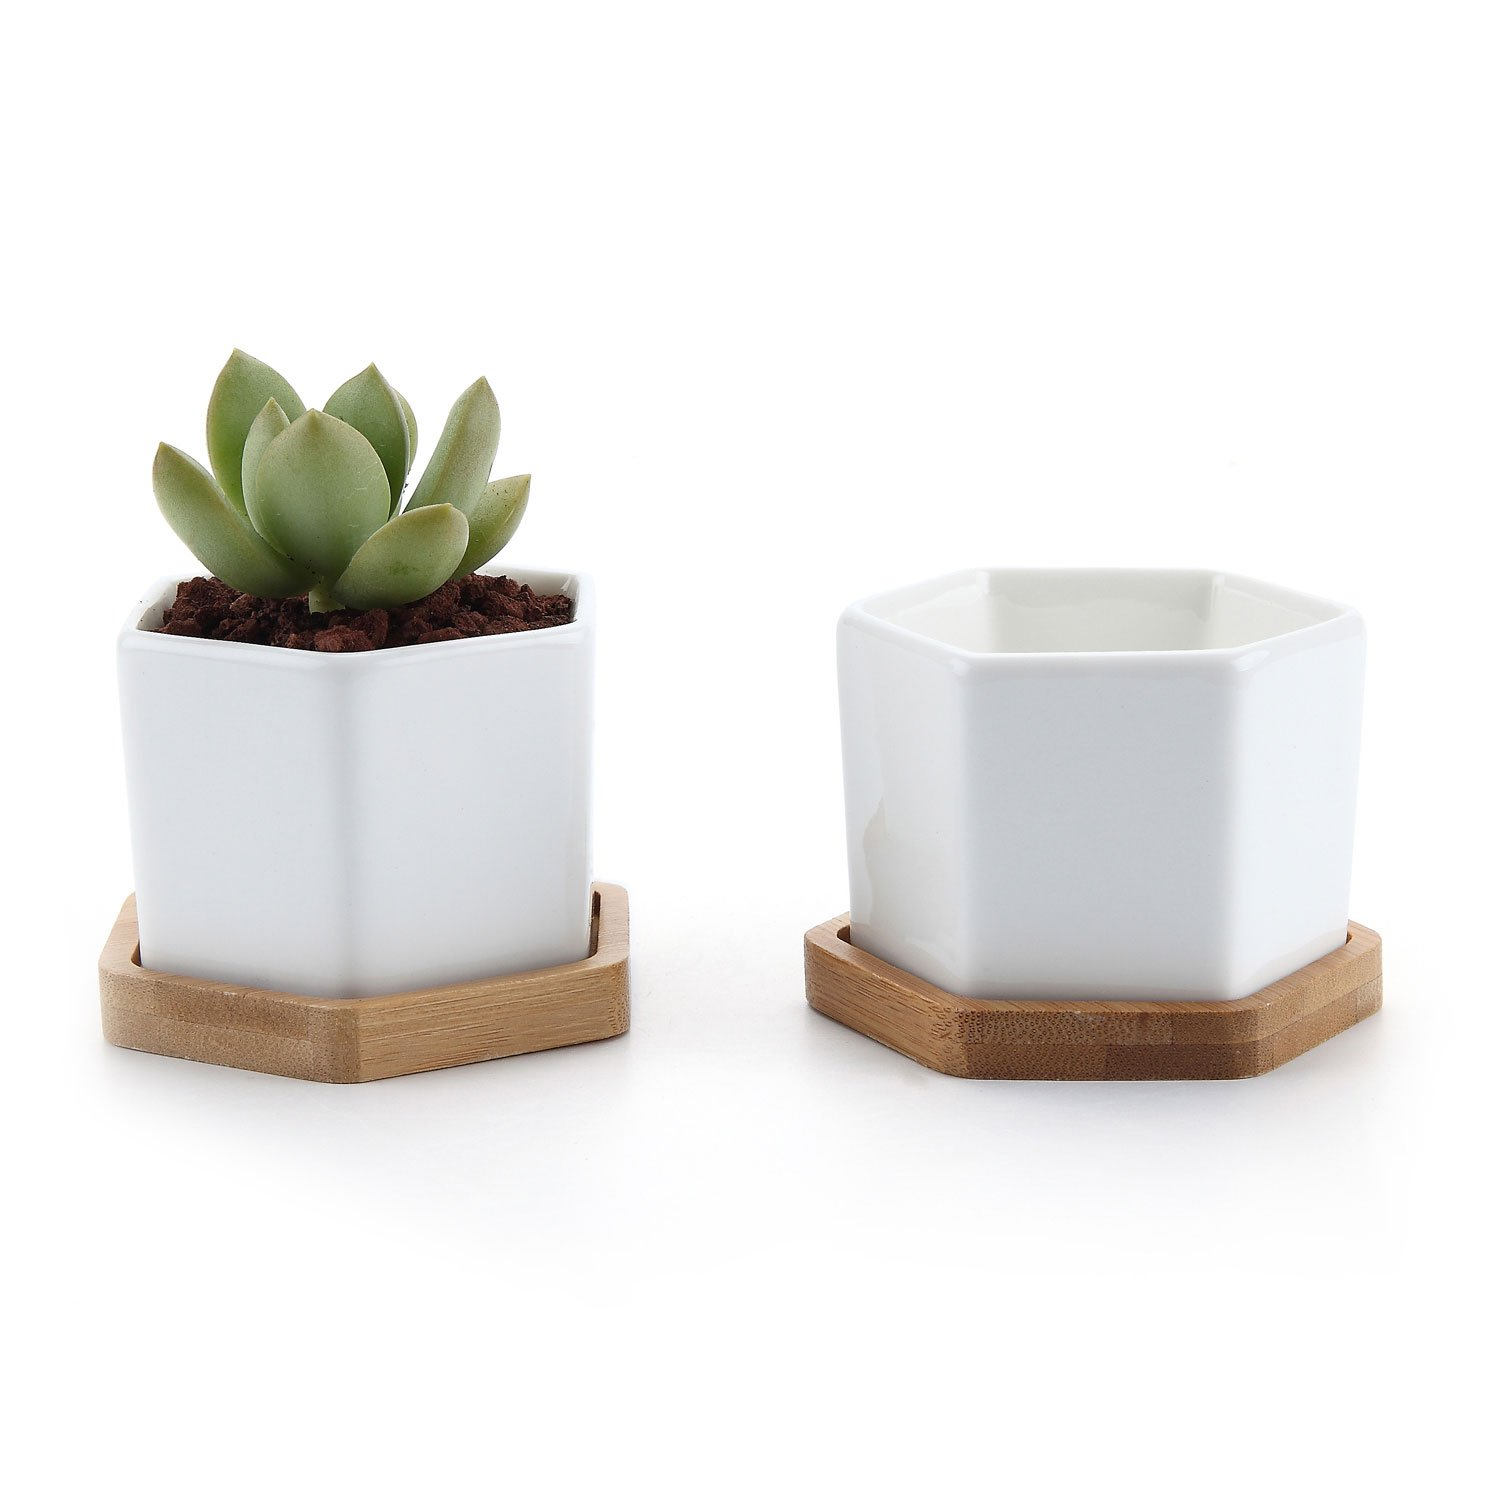 "T4U 2.75"" White Ceramic Pots Hexagon Succulent Cactus Planter with Free Bamboo Tray for Home Decoration 1 Pack of 2"